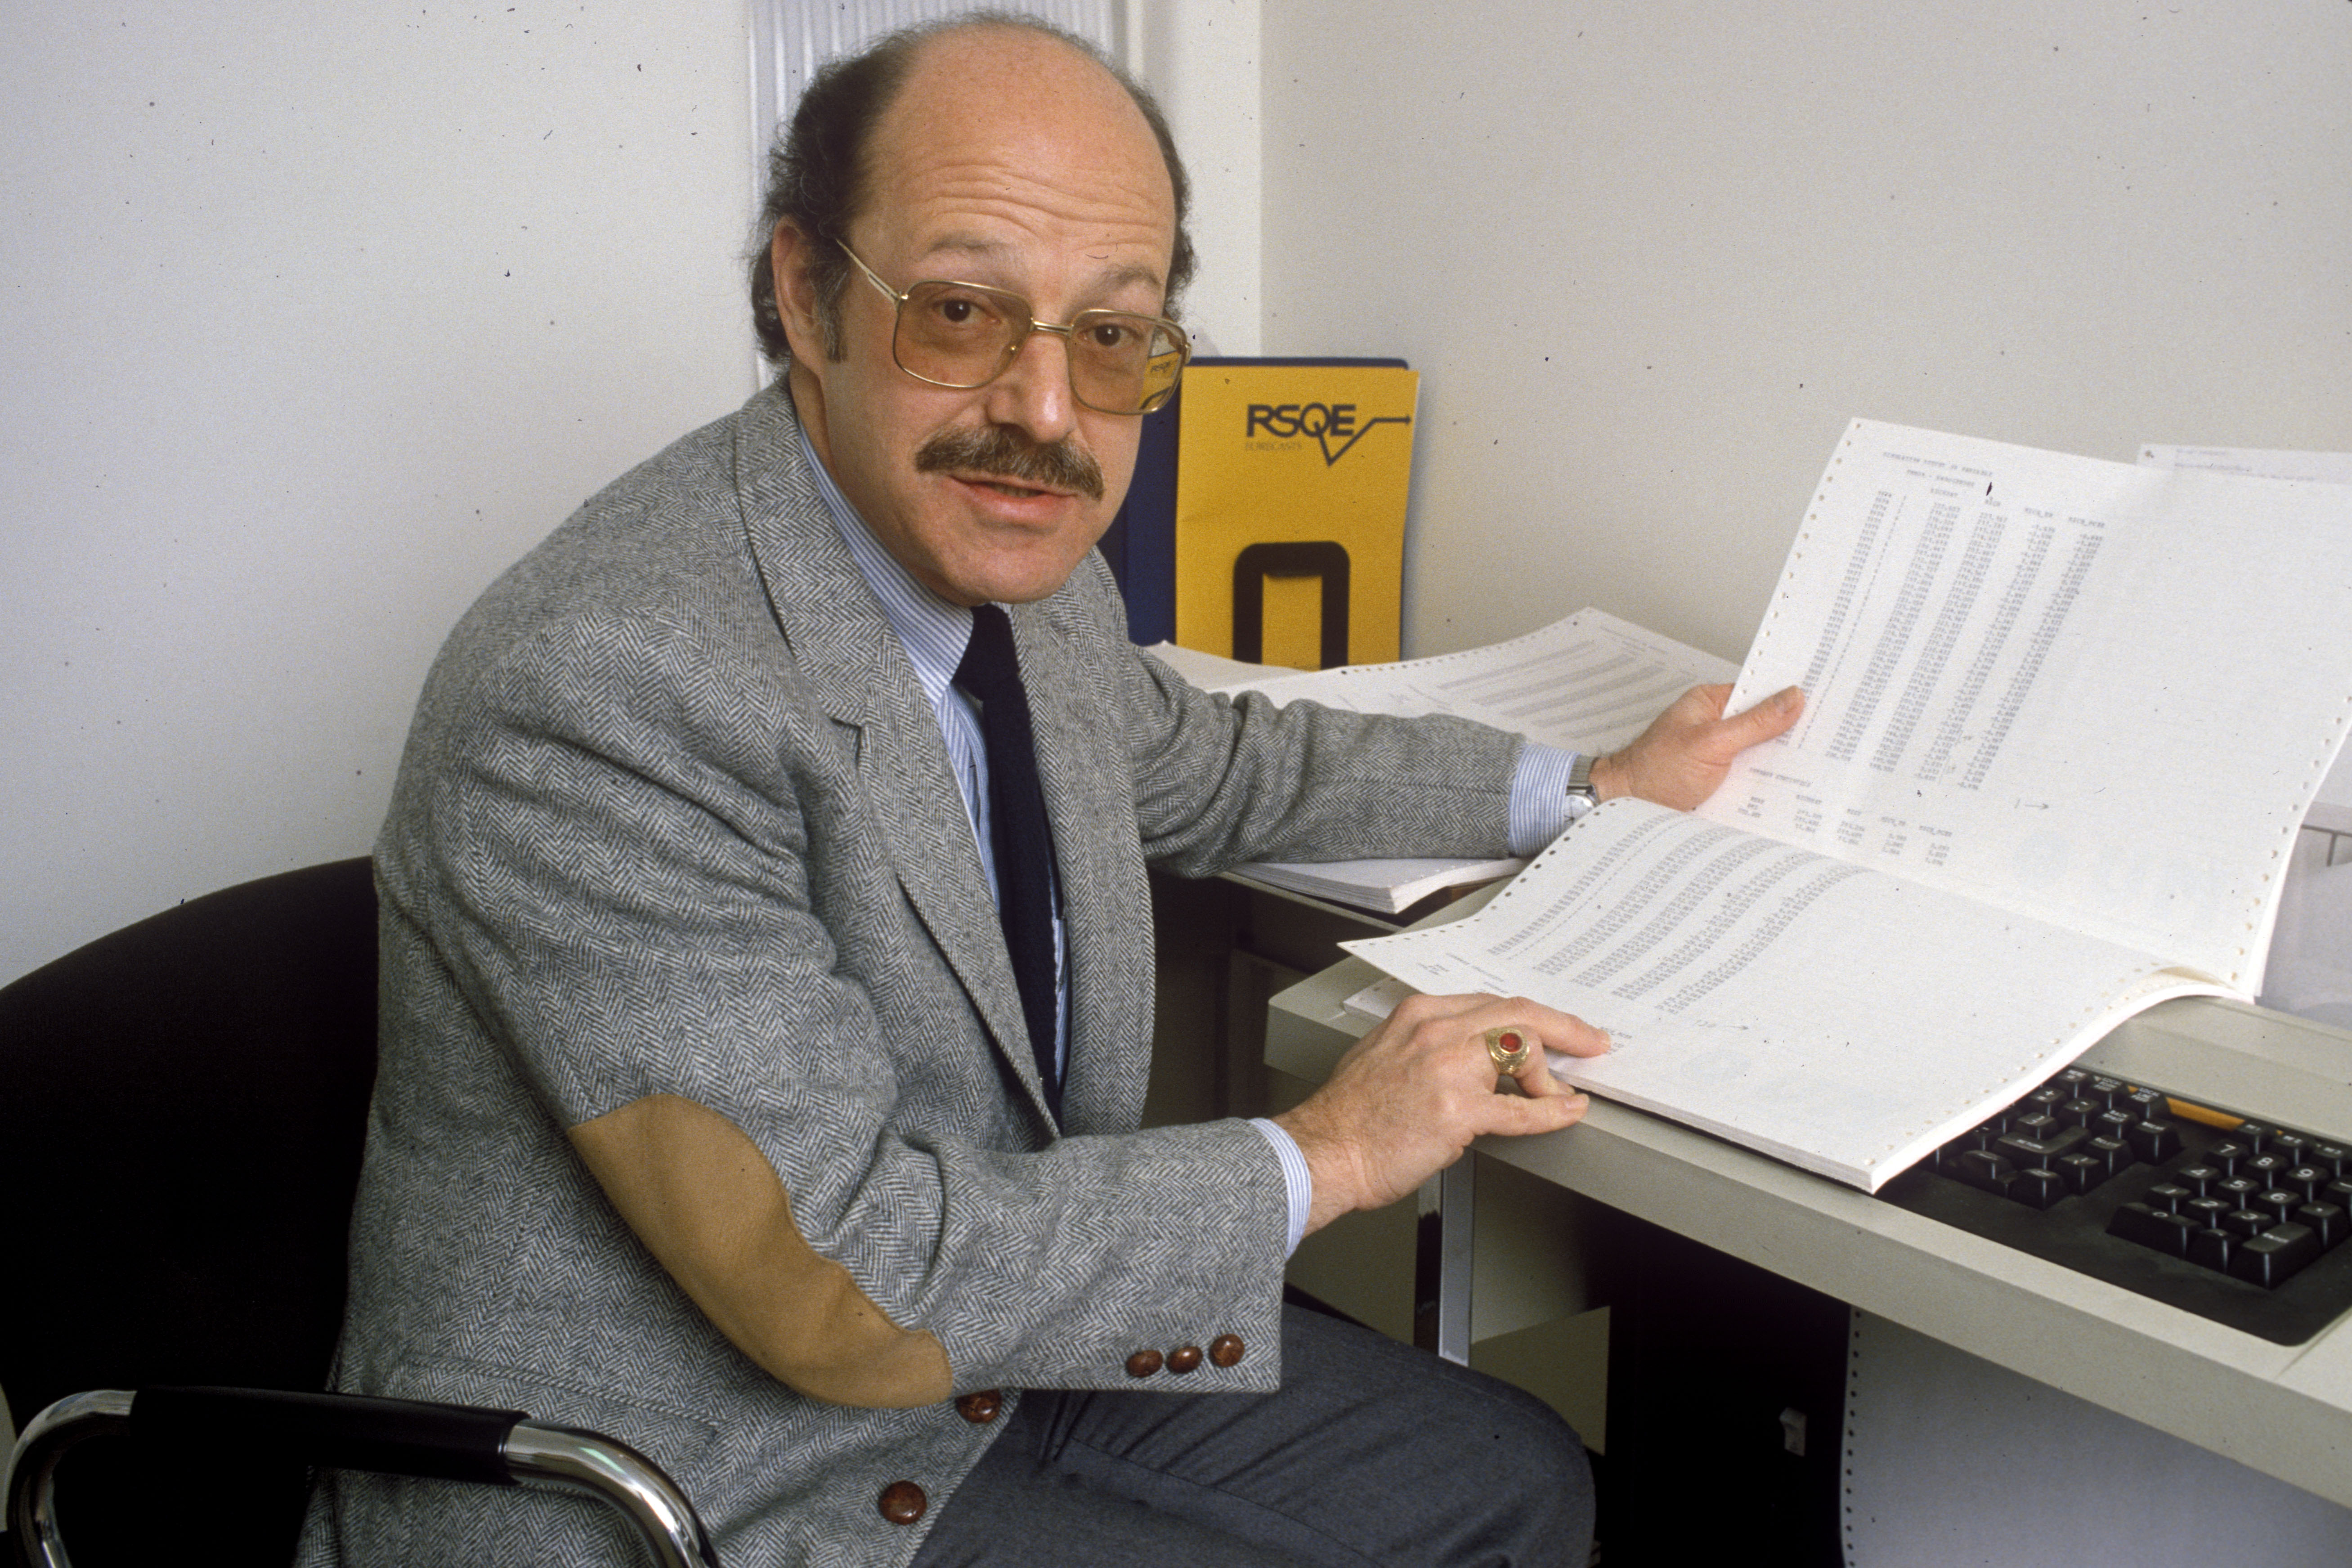 Saul H. Hymans, Professor of Economics and Director of the Research Seminar in Quantitative Economics at the University of Michigan in Ann Arbor, December 1983 image